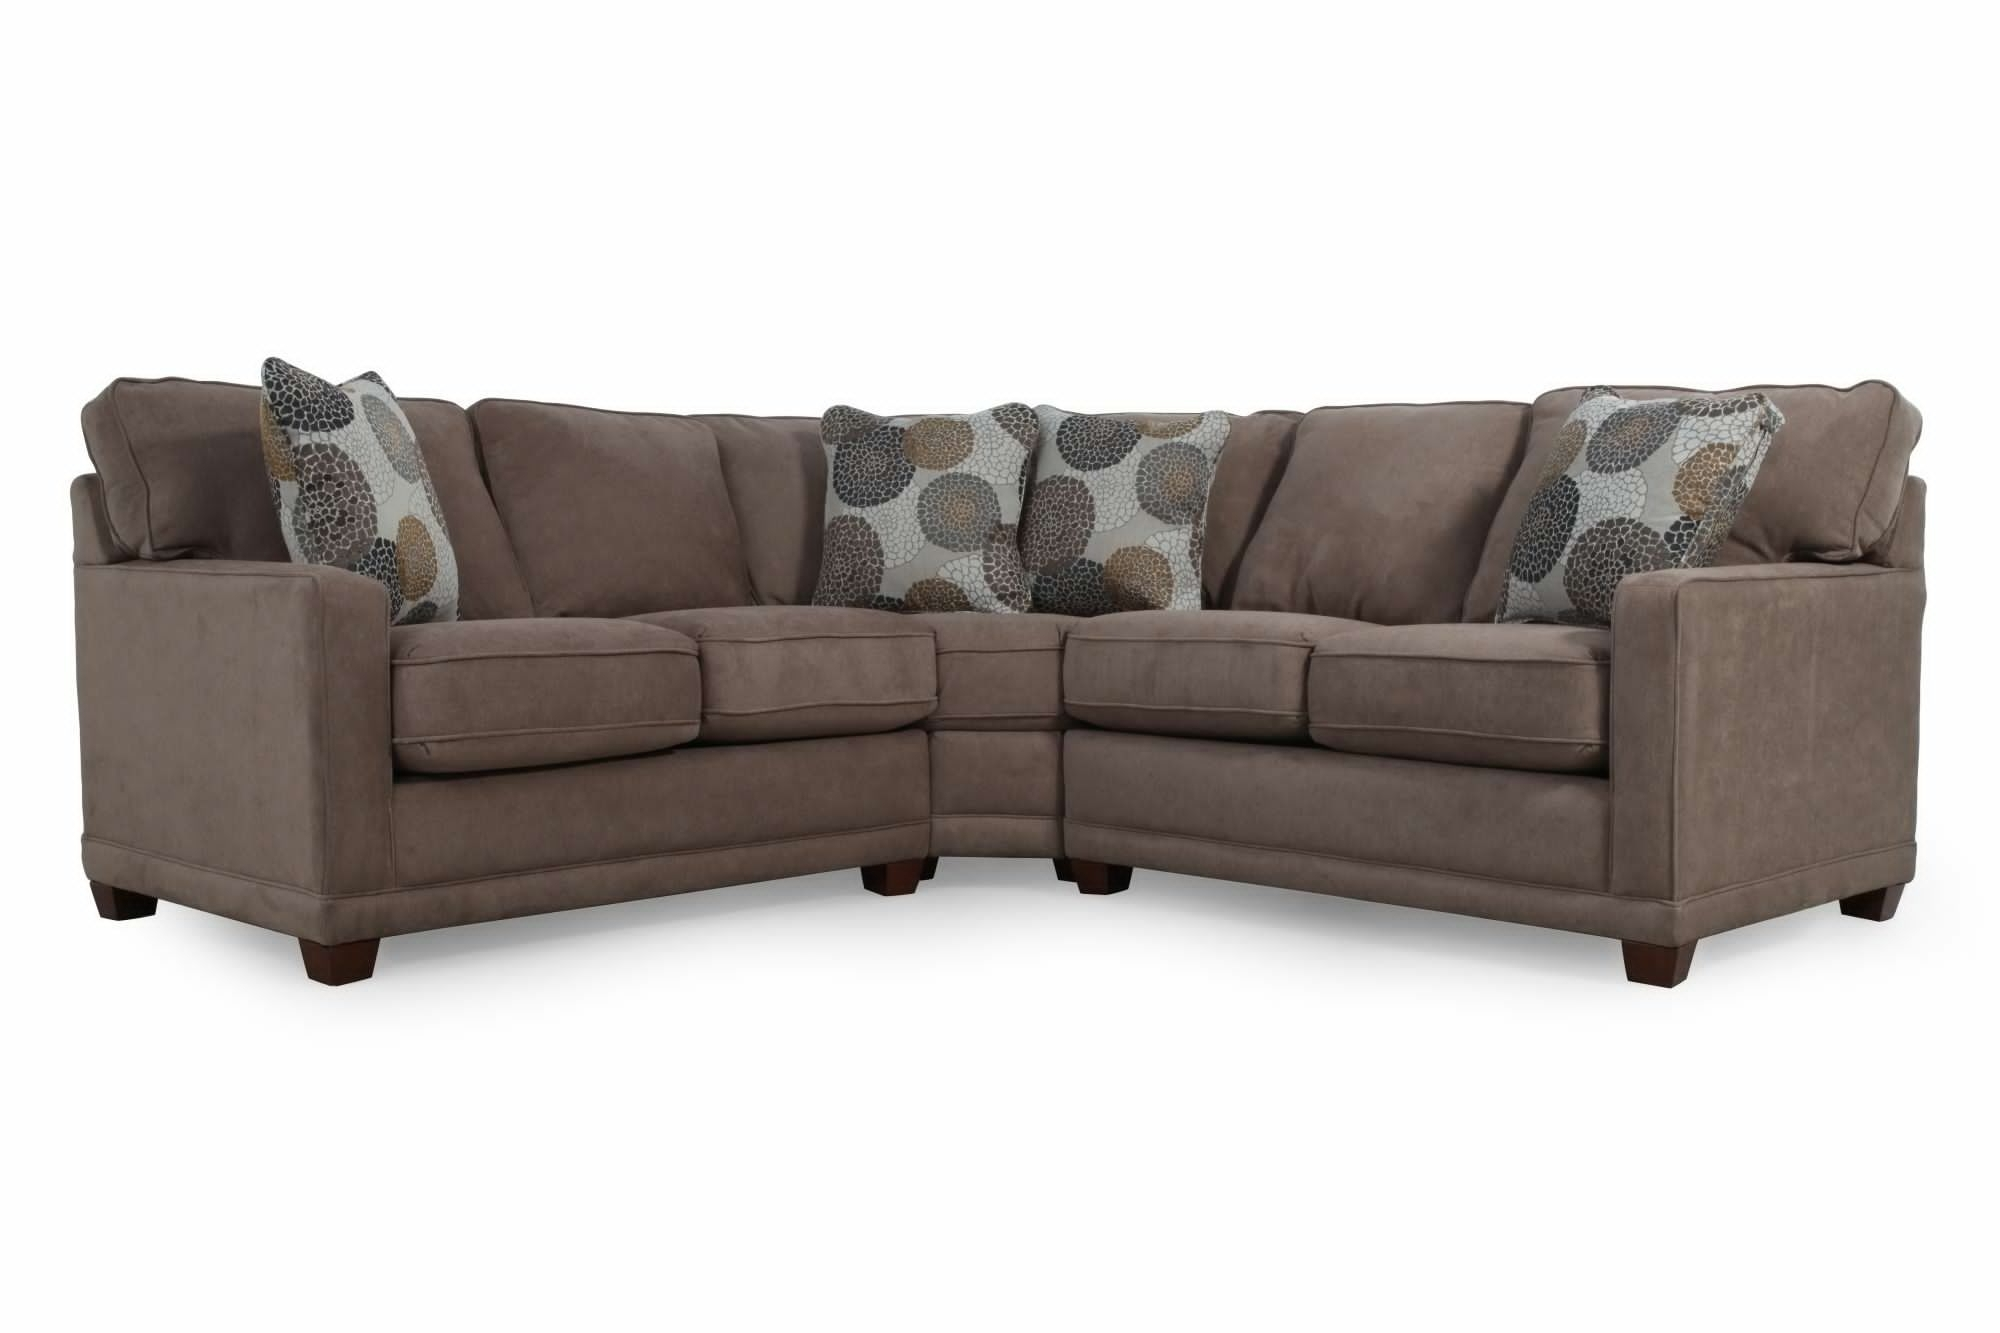 La Z Boy Sectional Sofas With Popular Sectional Sofa Design: Lazy Boy Sectional Sofa Sale James (View 10 of 20)